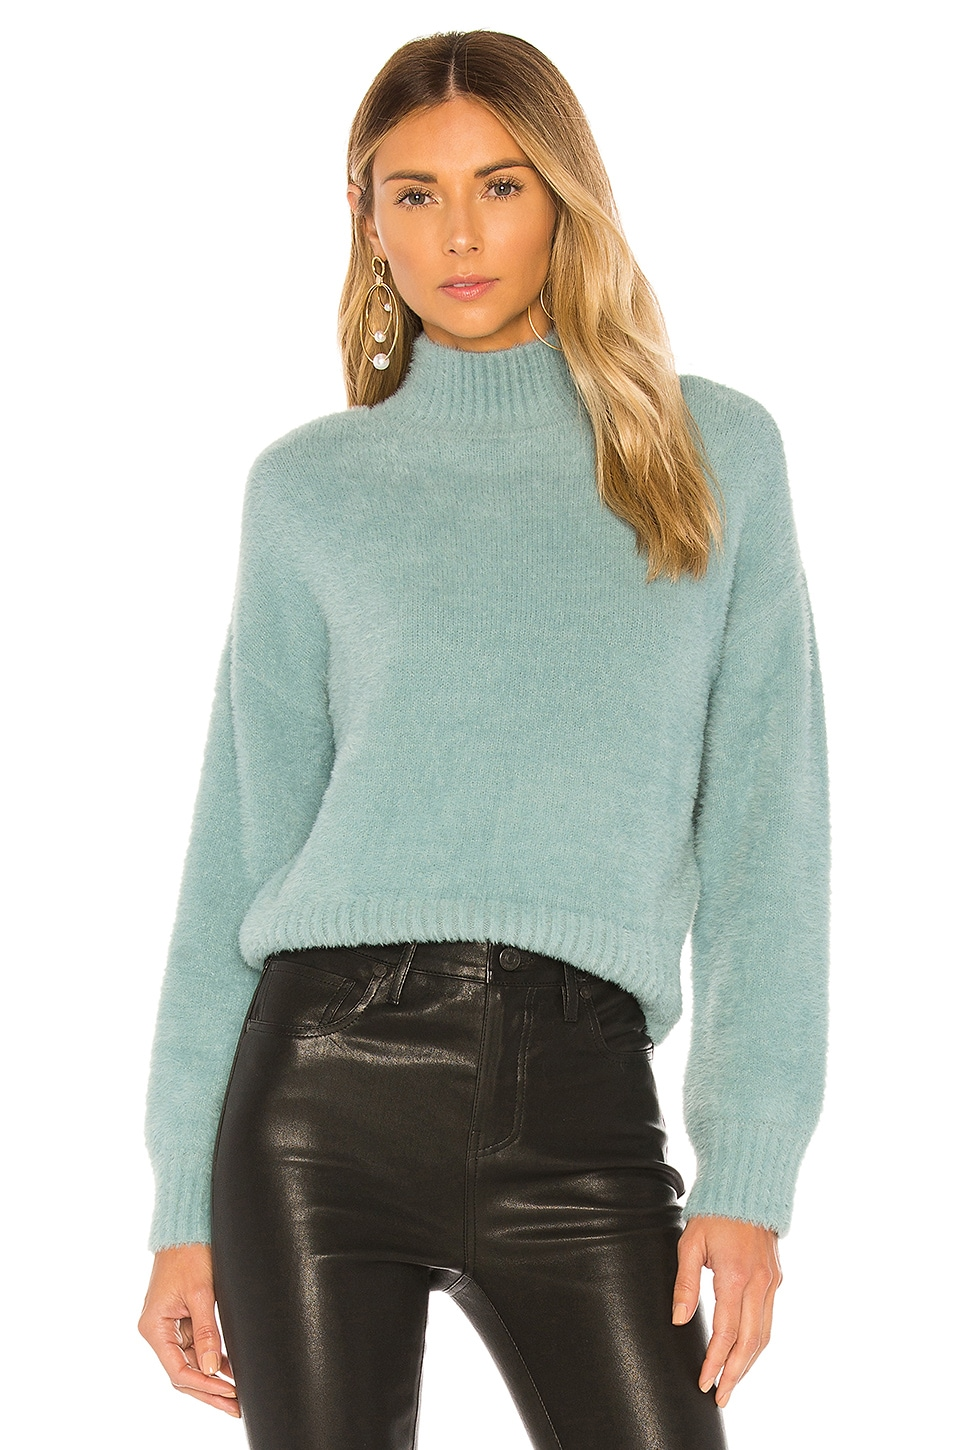 Lovers + Friends Maelie Sweater in Aqua